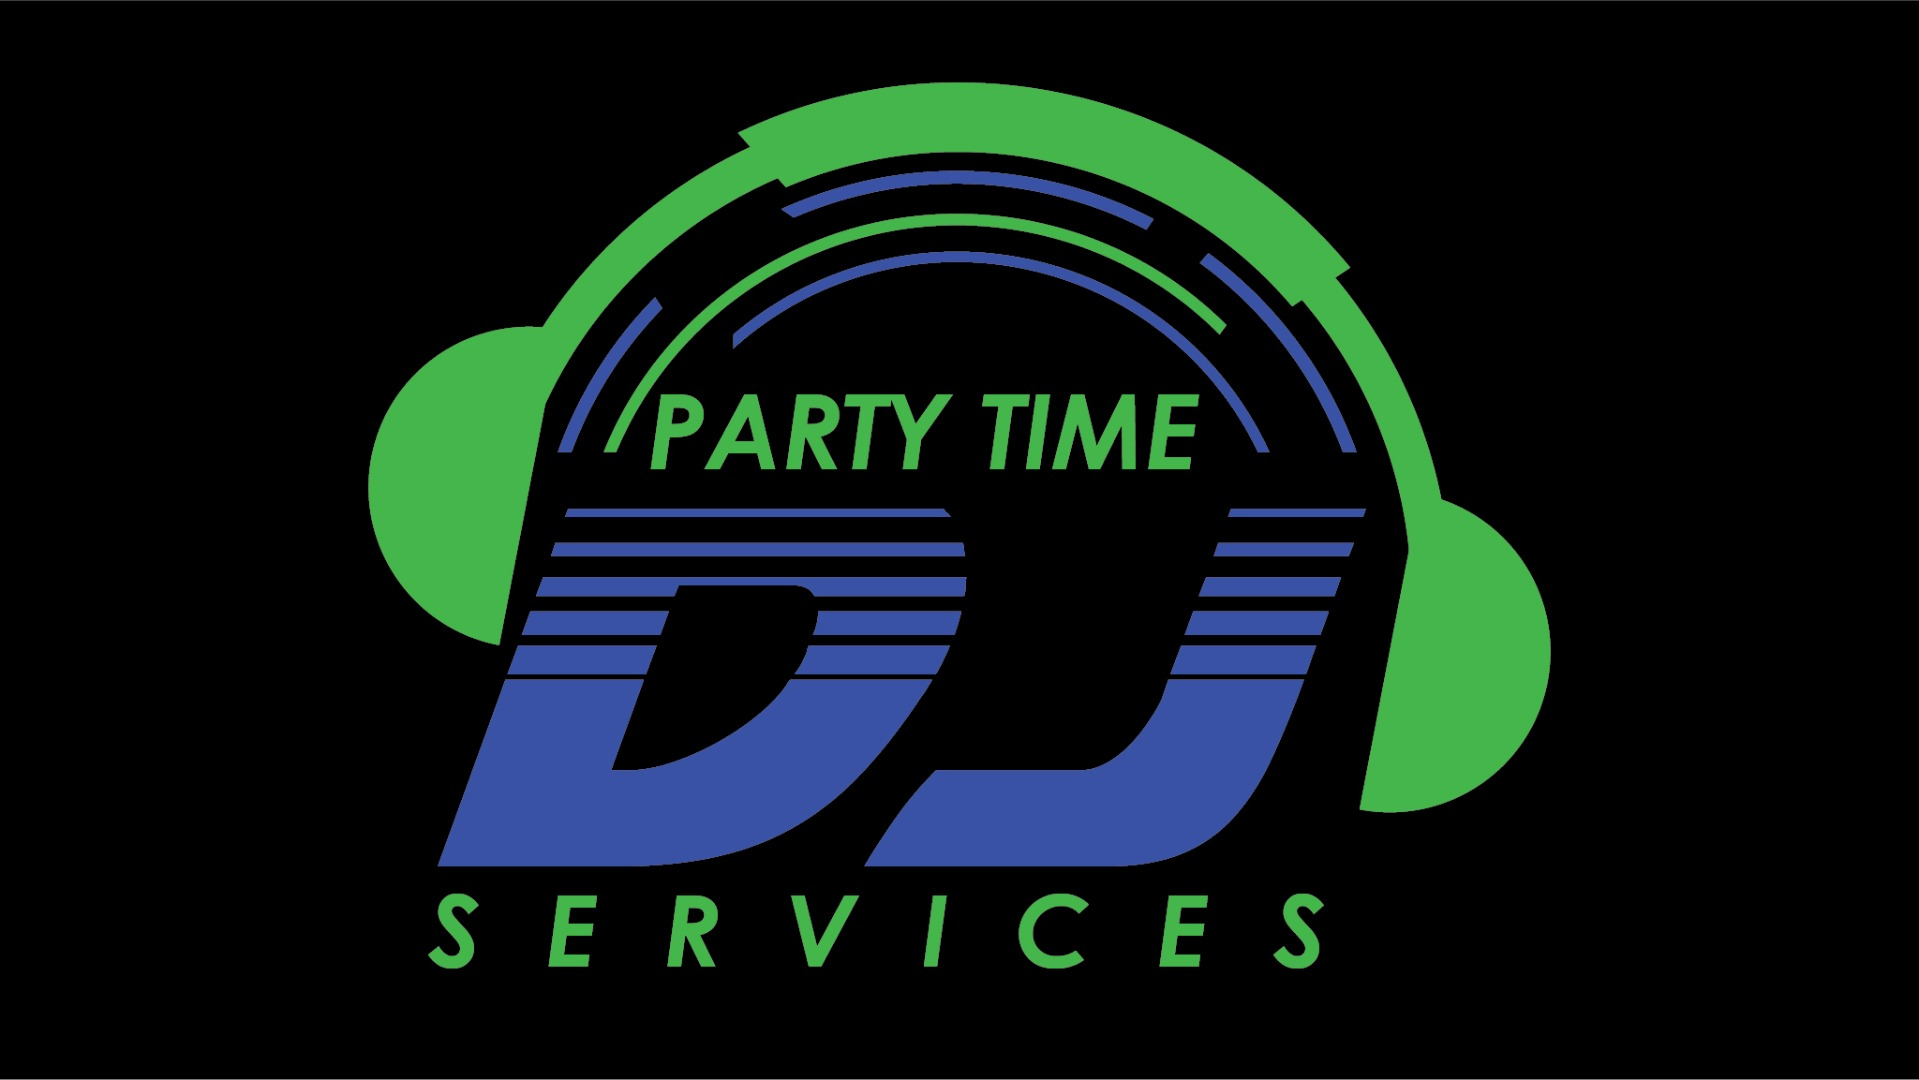 Party Time Party Time Dj Services Promo Slide Show